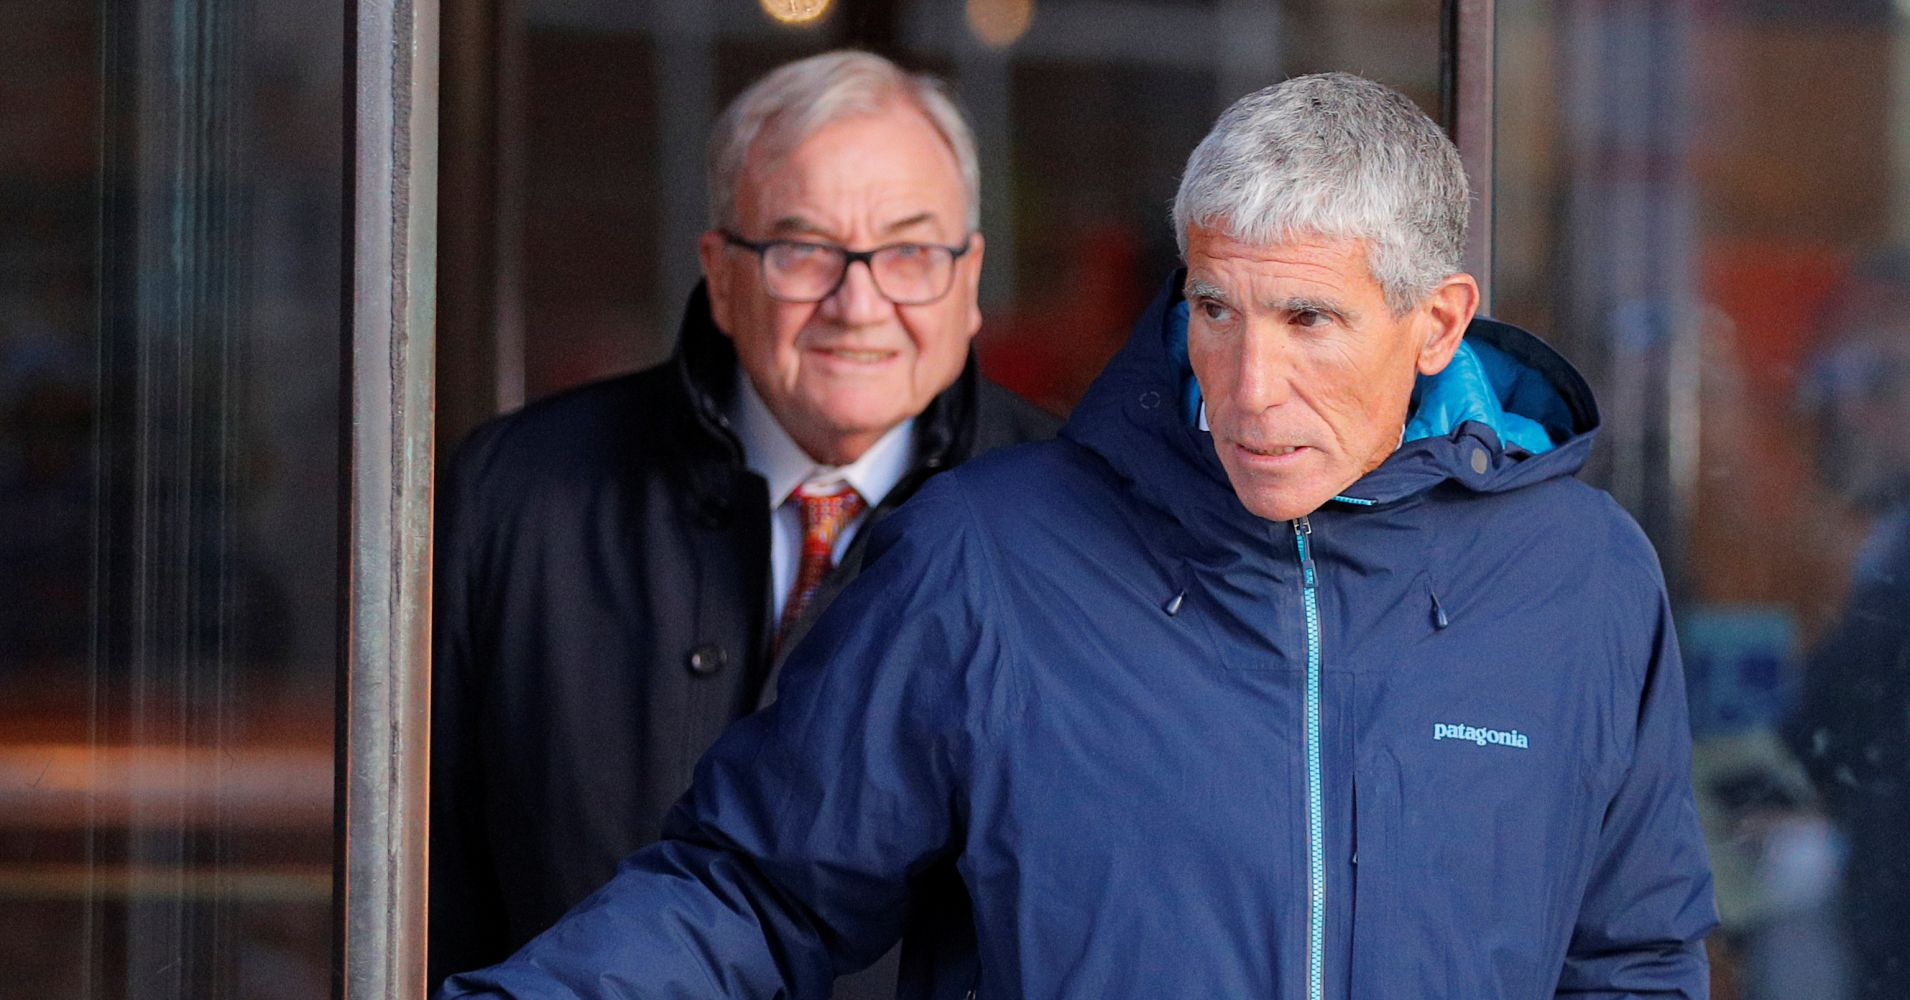 The College Admissions Scandal: What Happened?